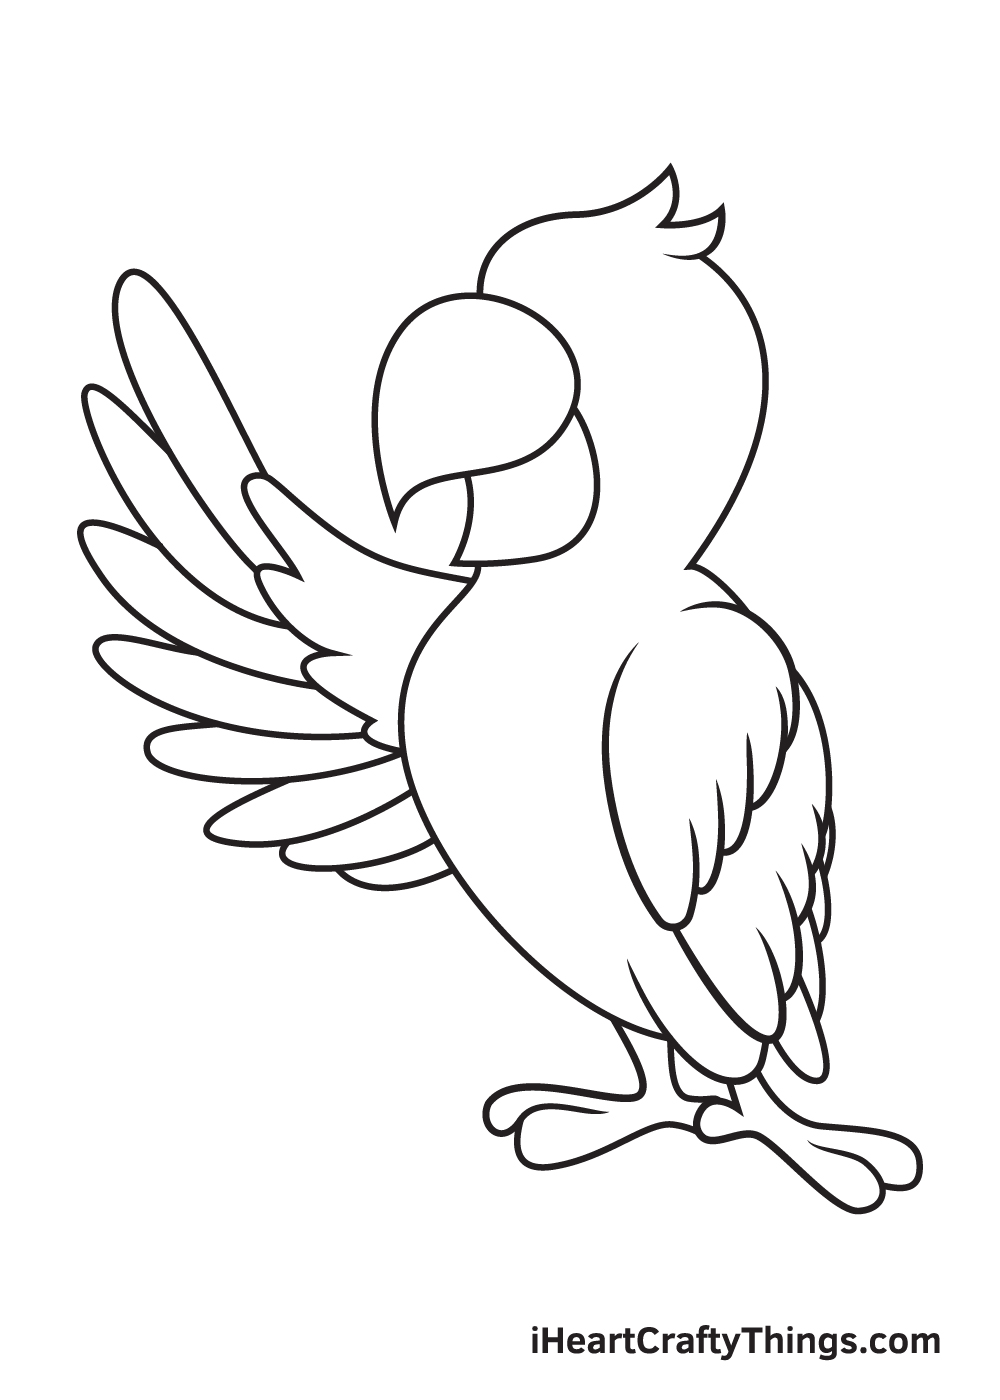 parrot drawing step 8